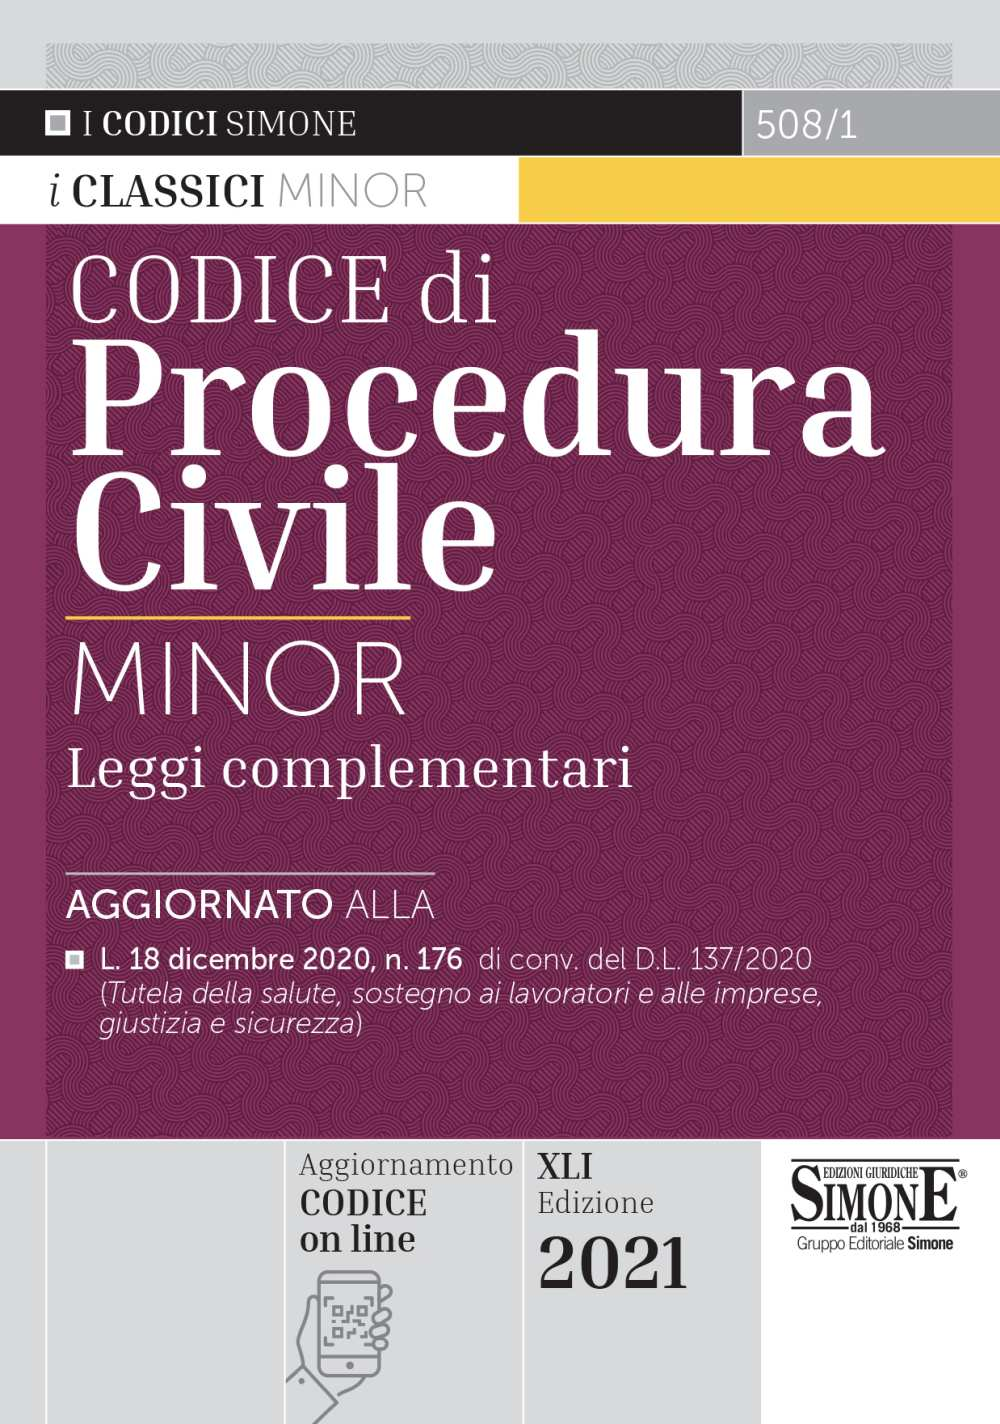 Codice di Procedura Civile Minor